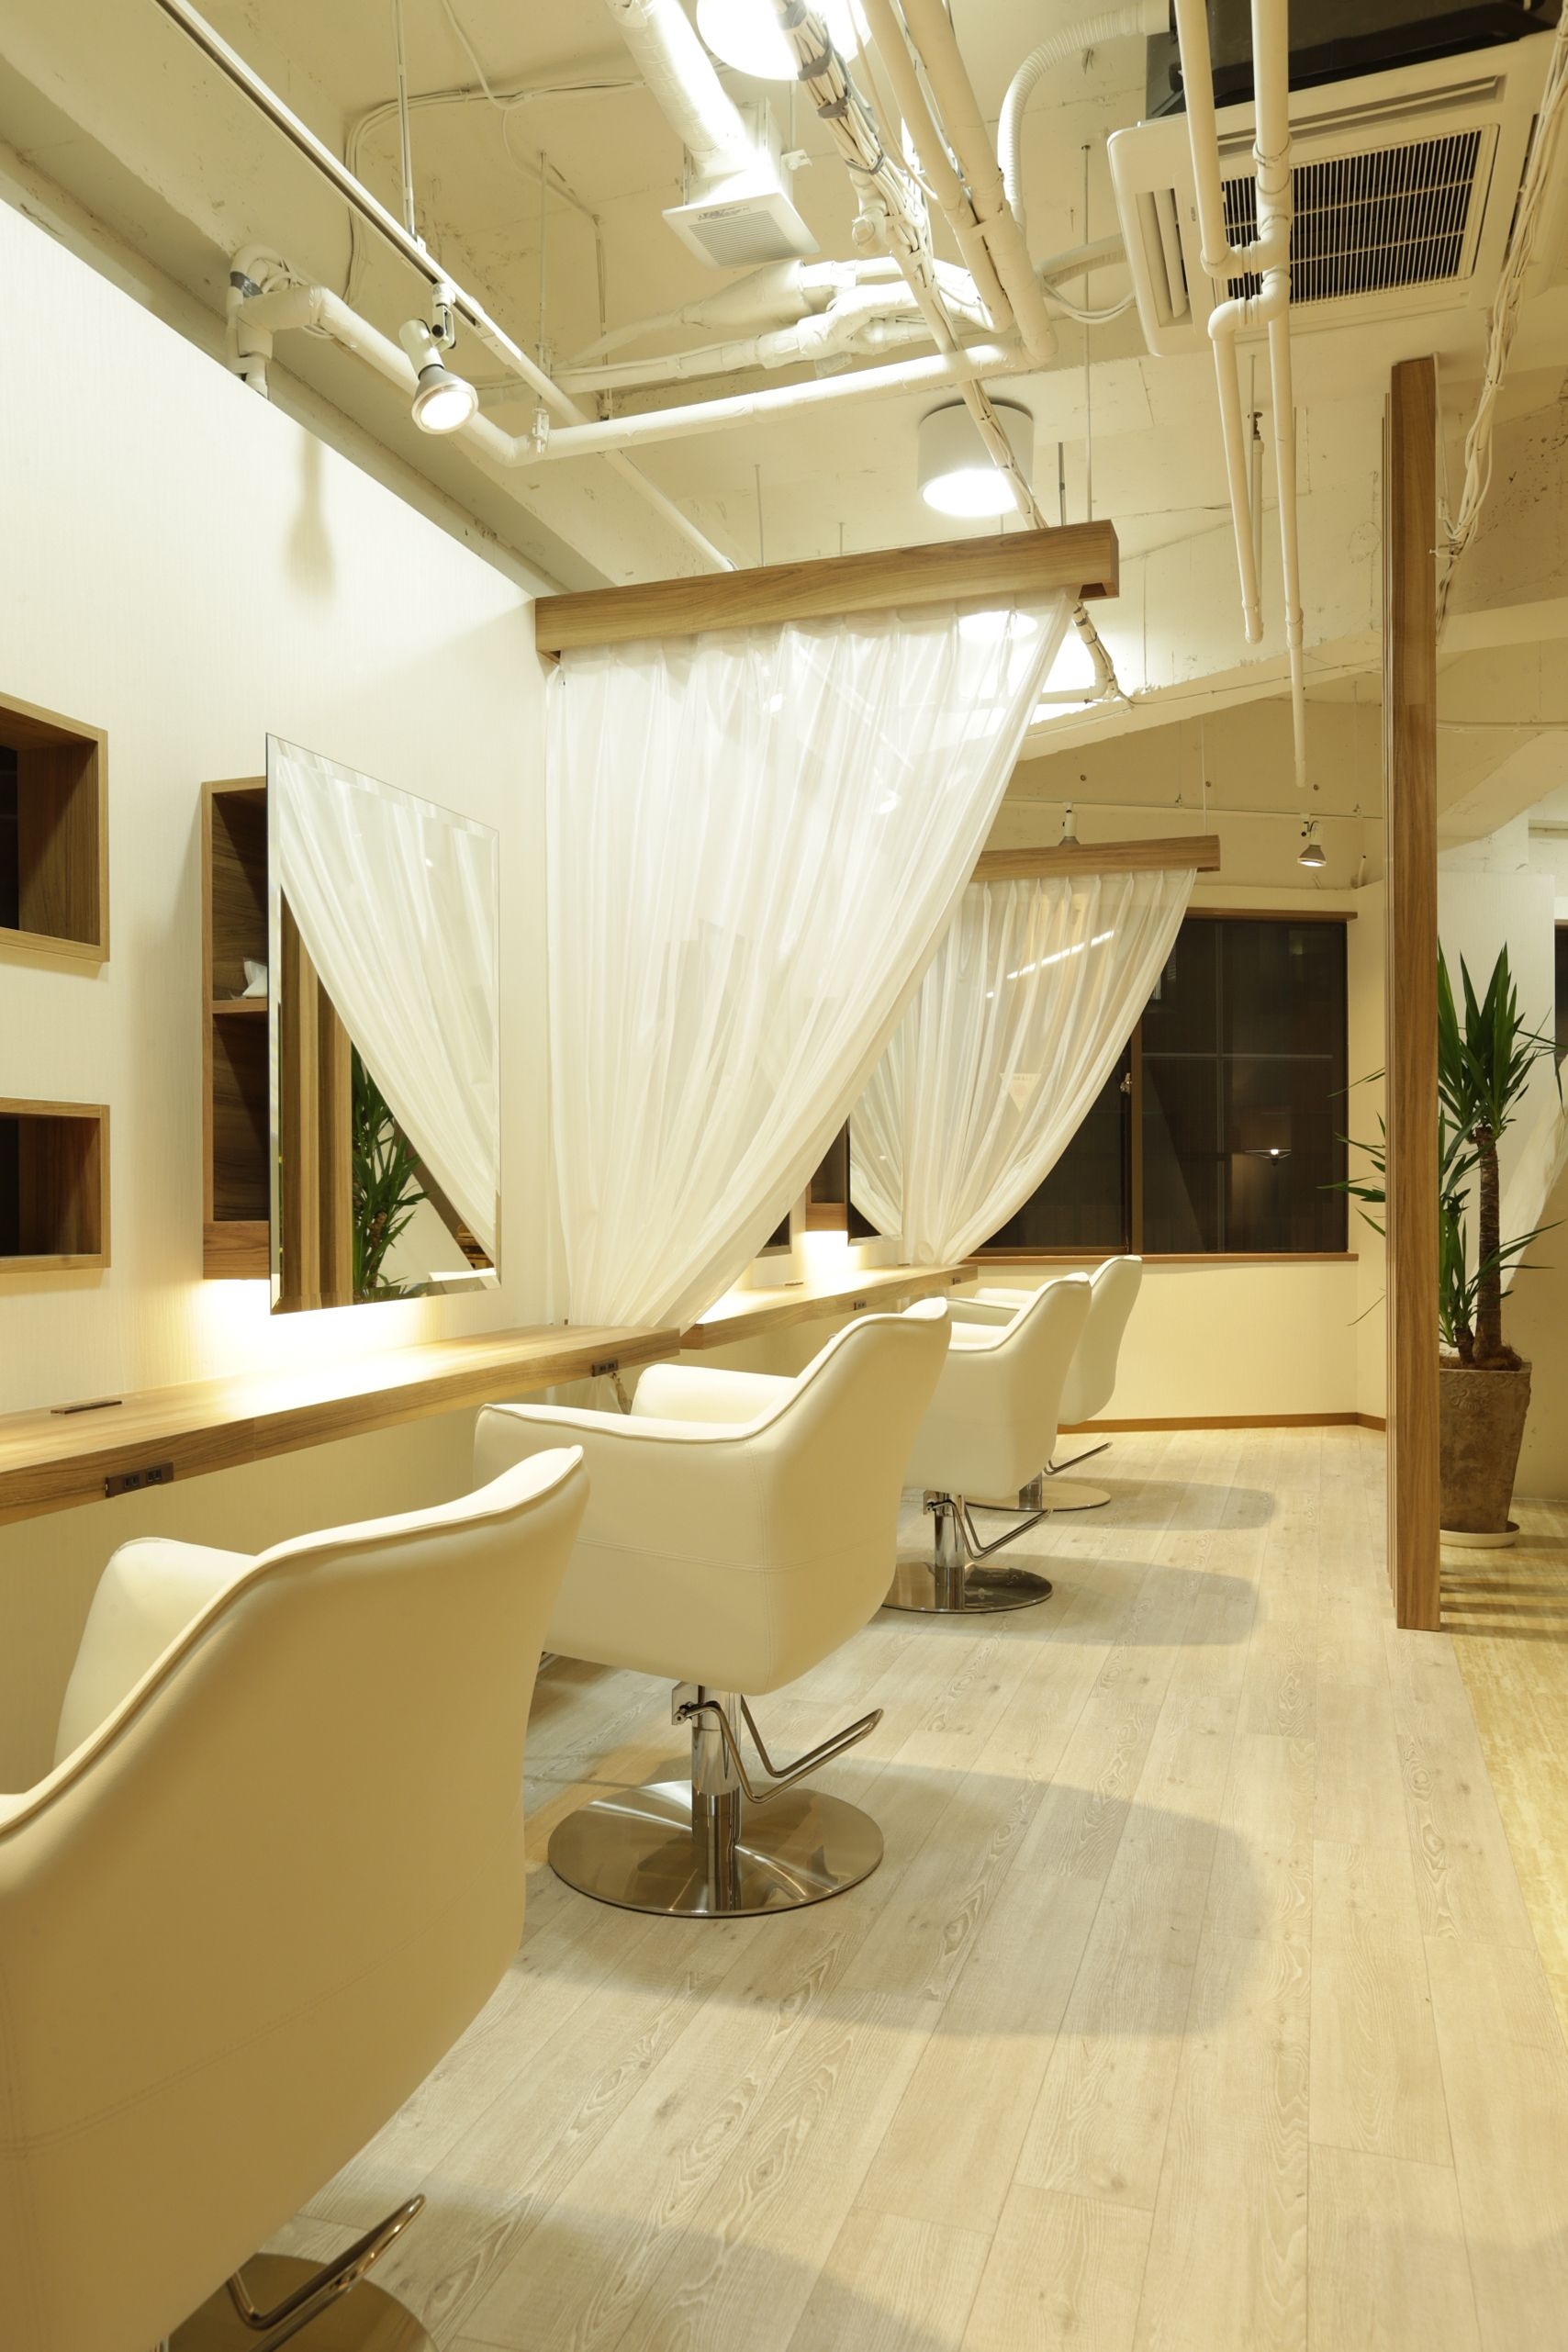 beauty salon interior design ideas chairs mirrors space decor japan